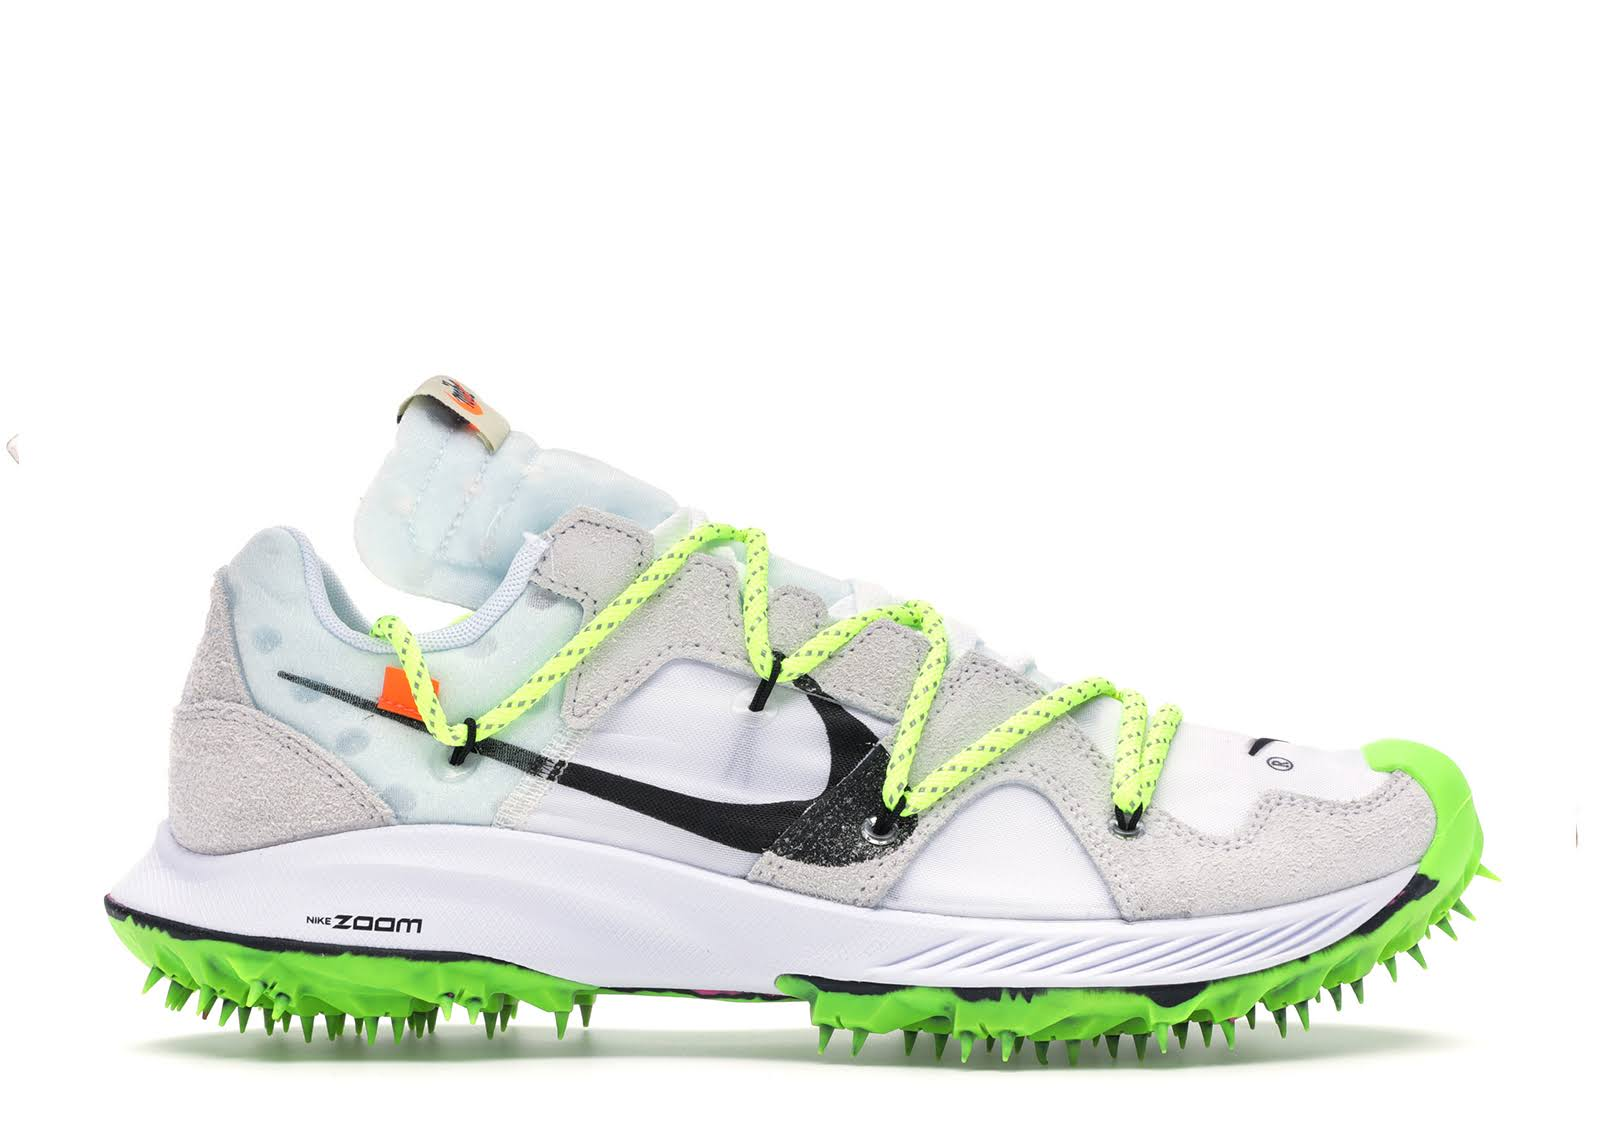 Nike Womens Zoom Terra Kiger 5 'Off-White' Shoes - Size 14.5W